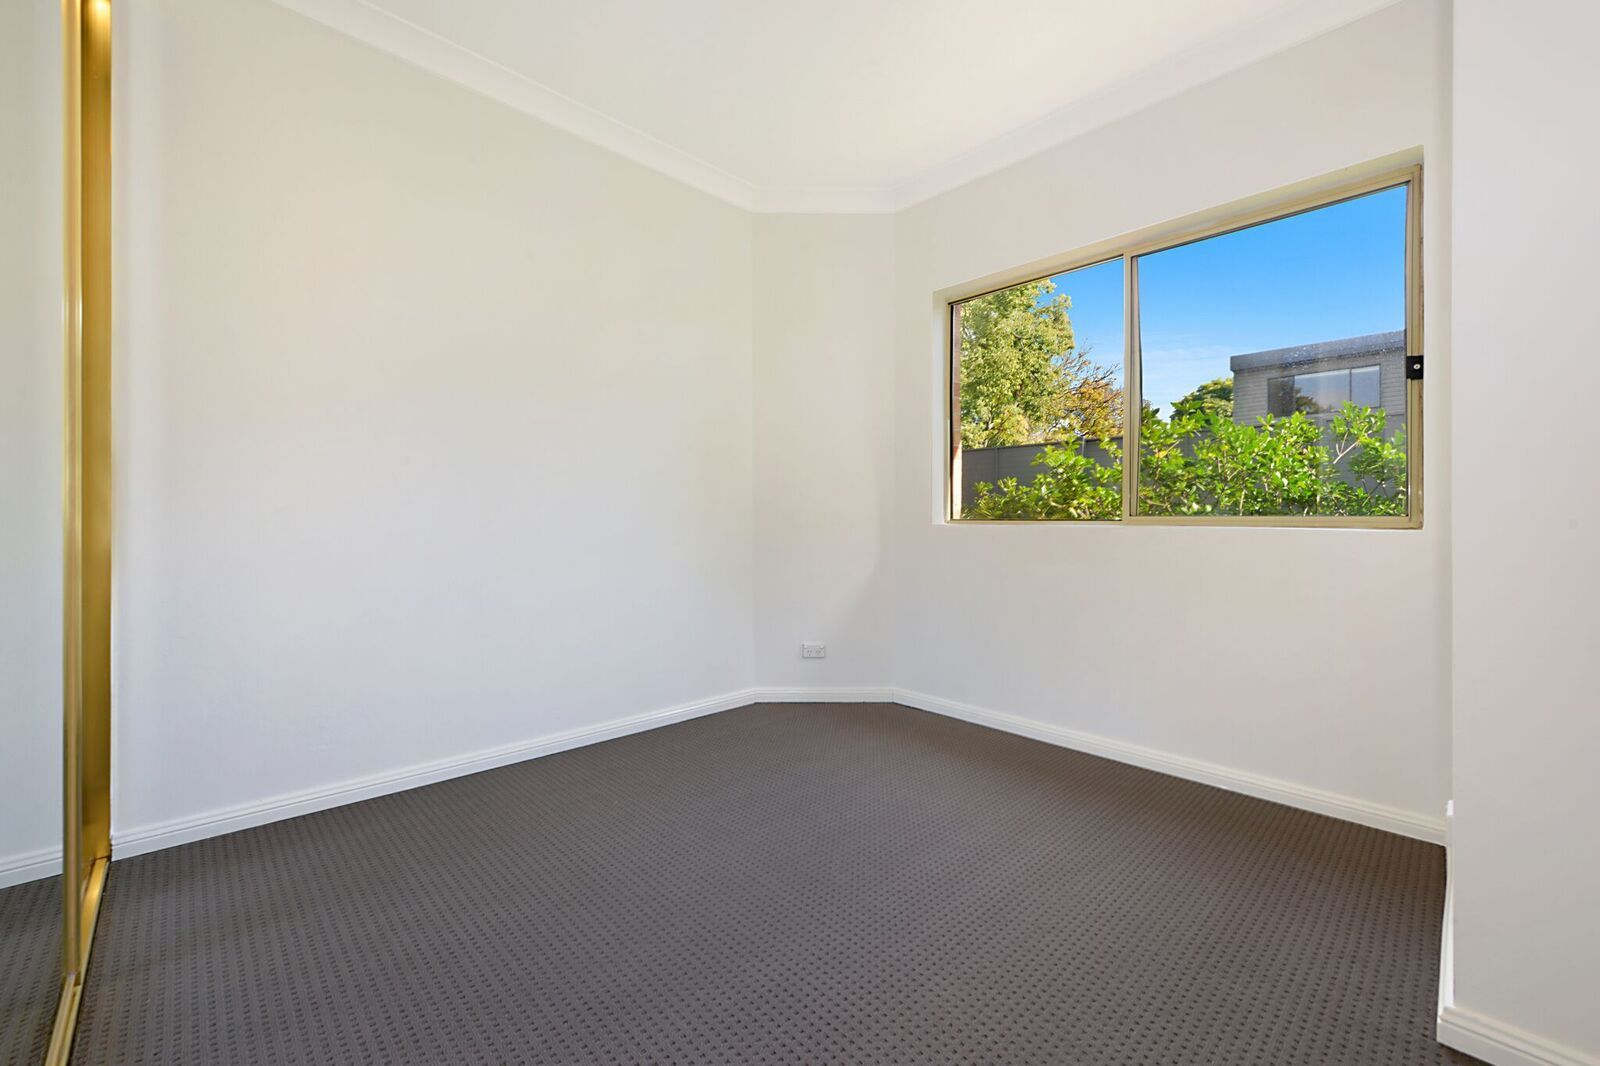 2/62 Bennett St, West Ryde NSW 2114, Image 1